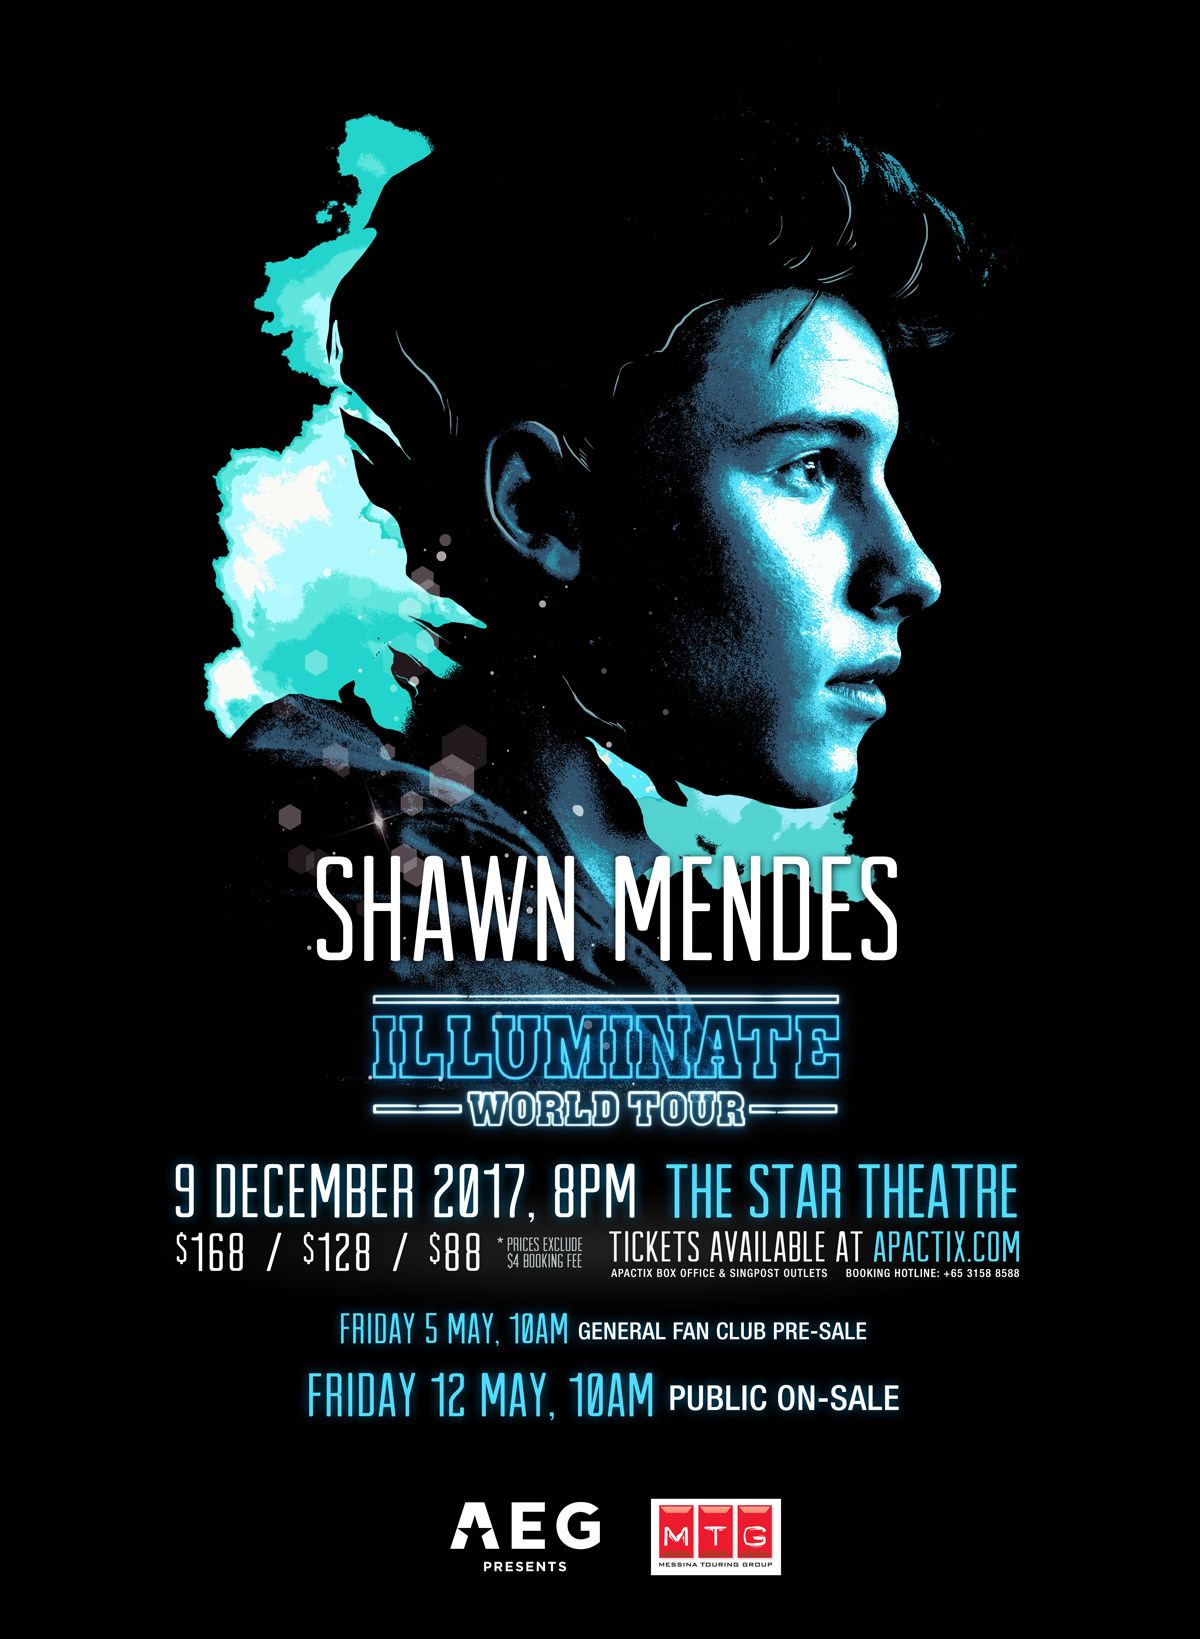 shawn mendes, singapore, the star theatre